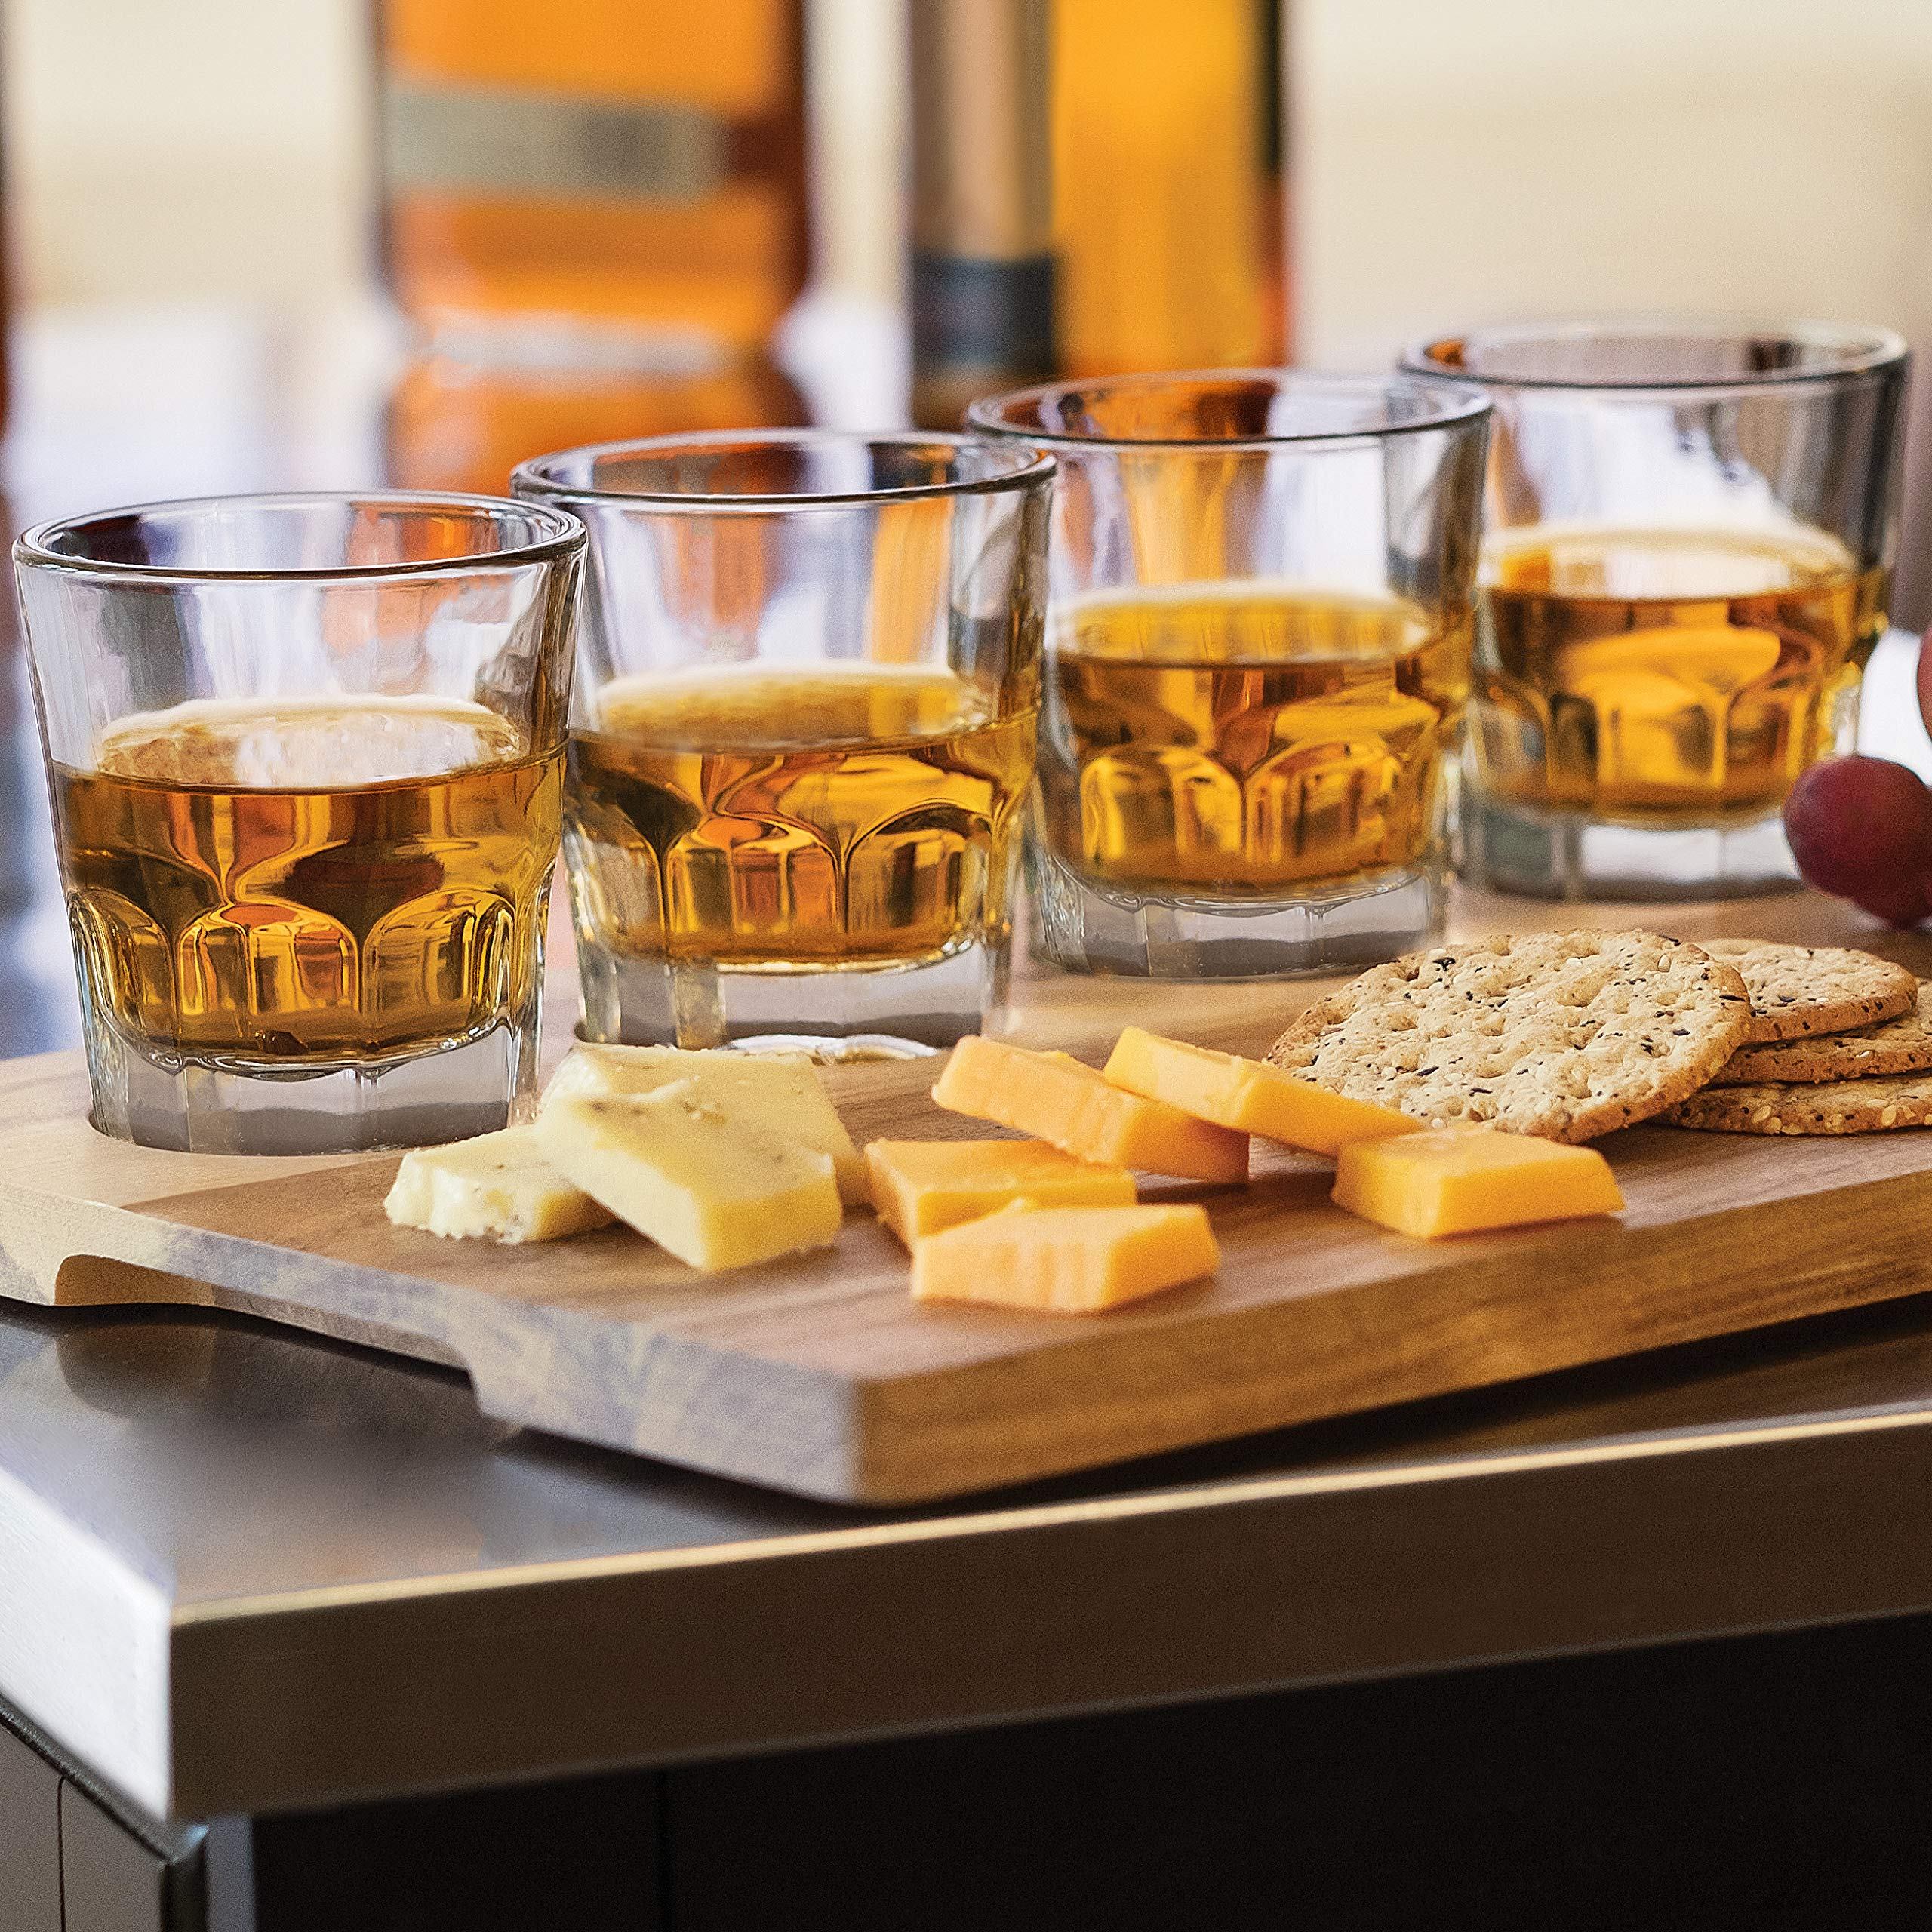 Libbey Craft Spirits Whiskey Flight Glass Set with Wood Carrier, 4 Glasses